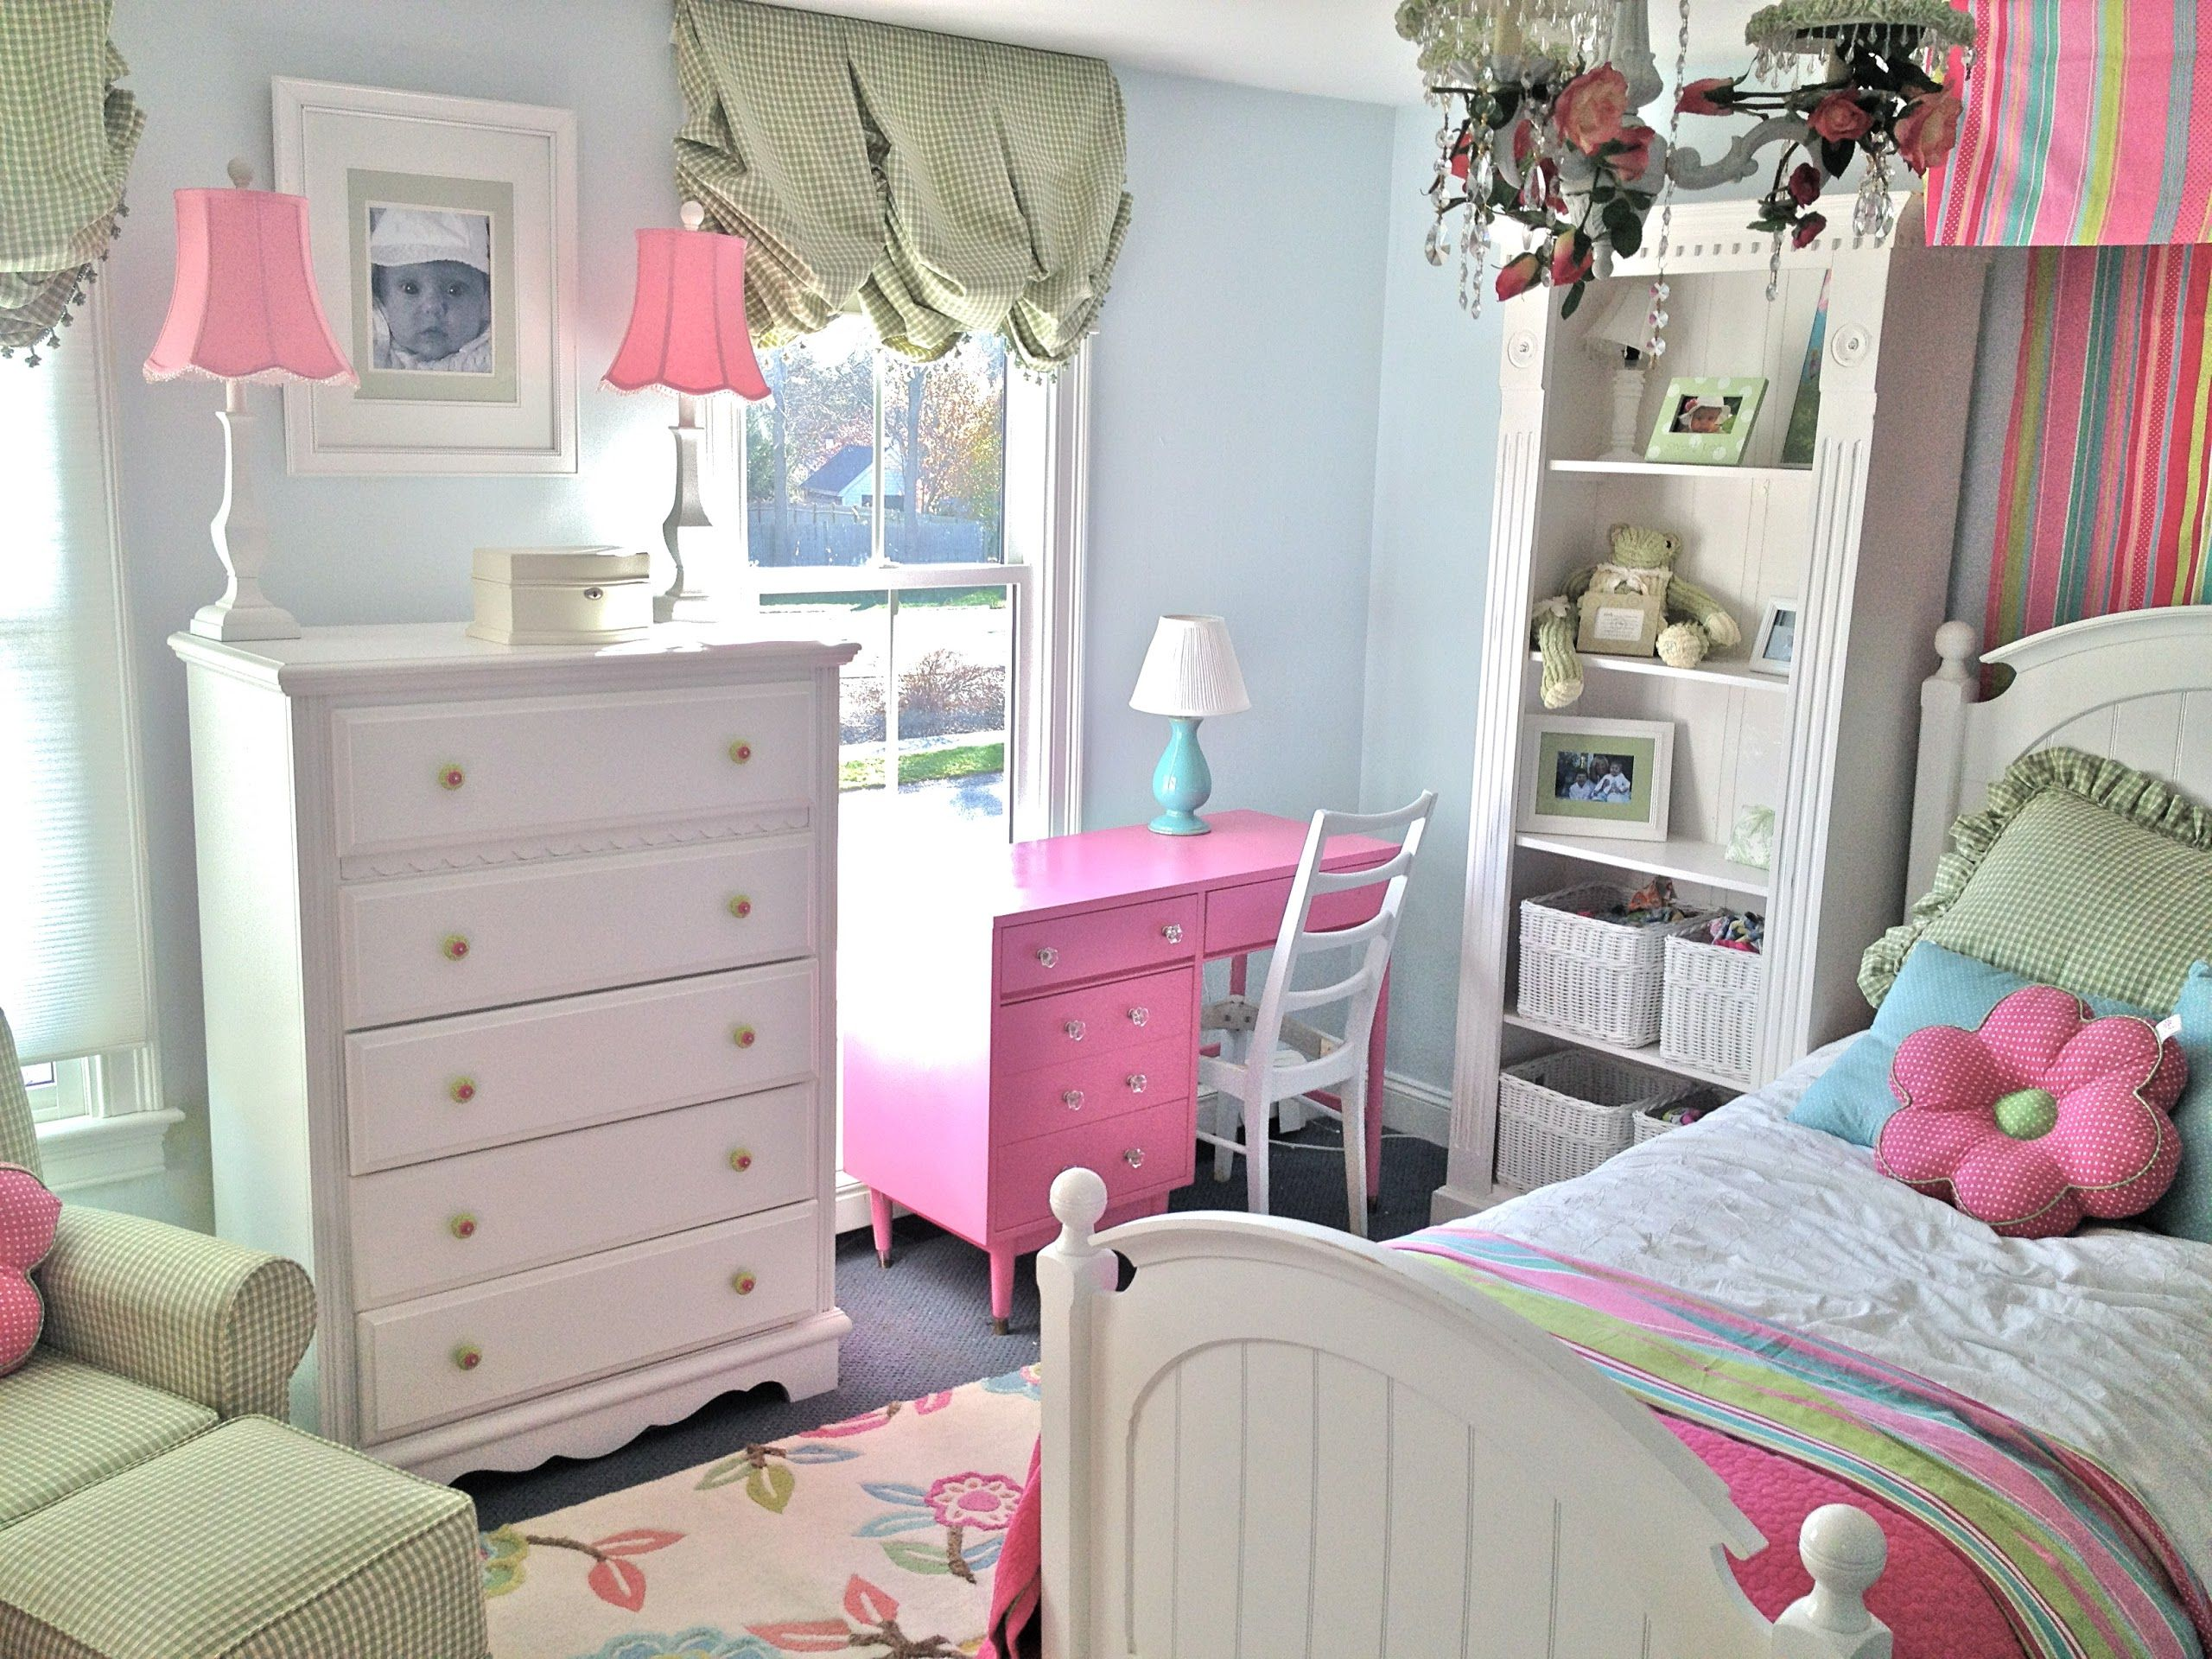 White Desk For Girls Room Adorable Cute White And Light Blue Room Decoration For Teen Girl Bedroom Inspiration